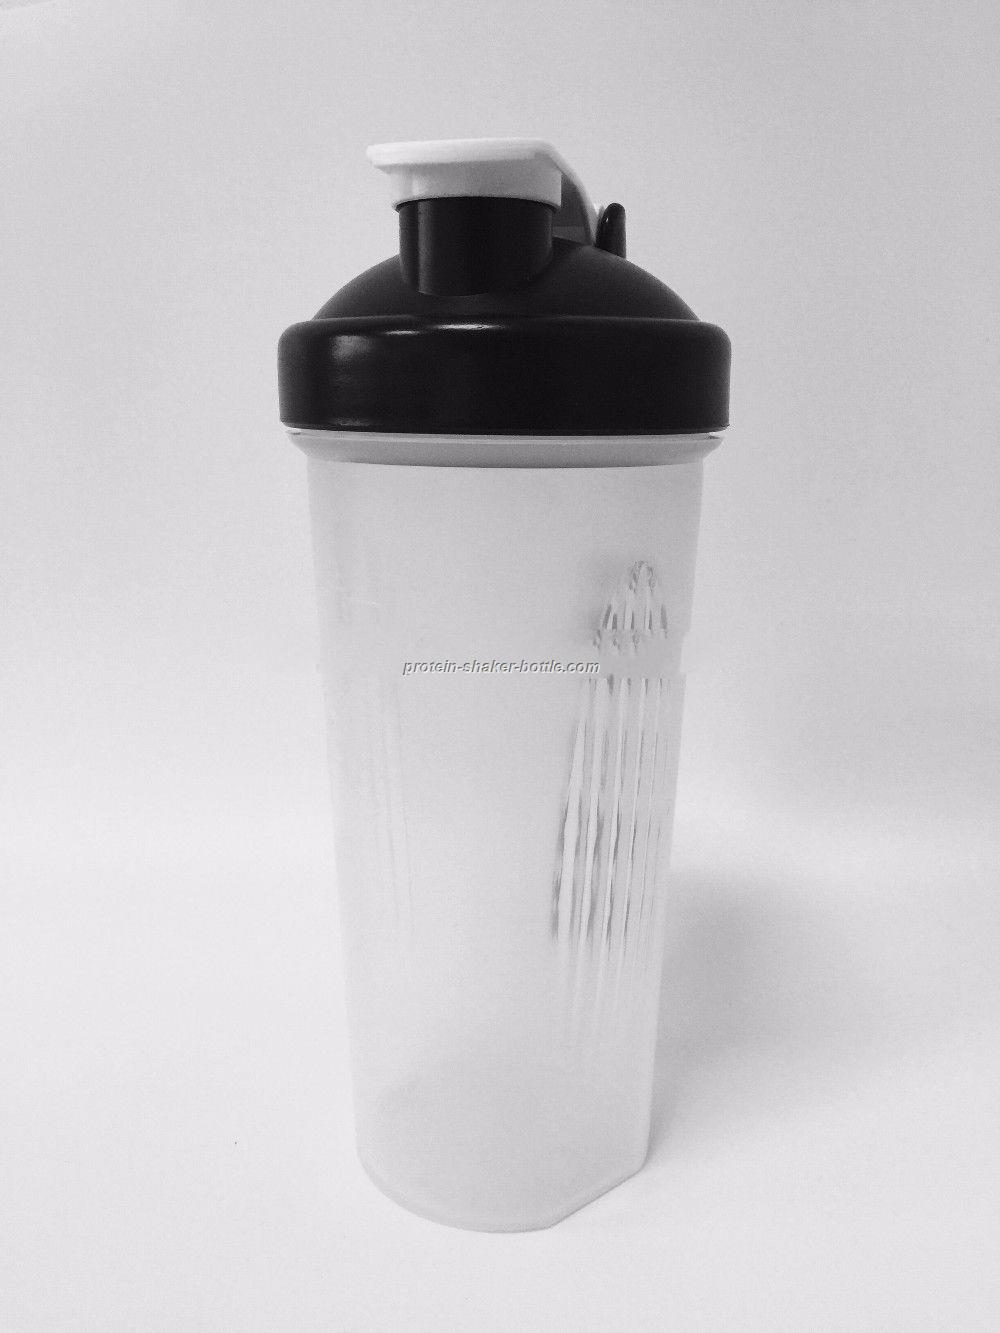 Custom 400ml Protein Shaker Cup